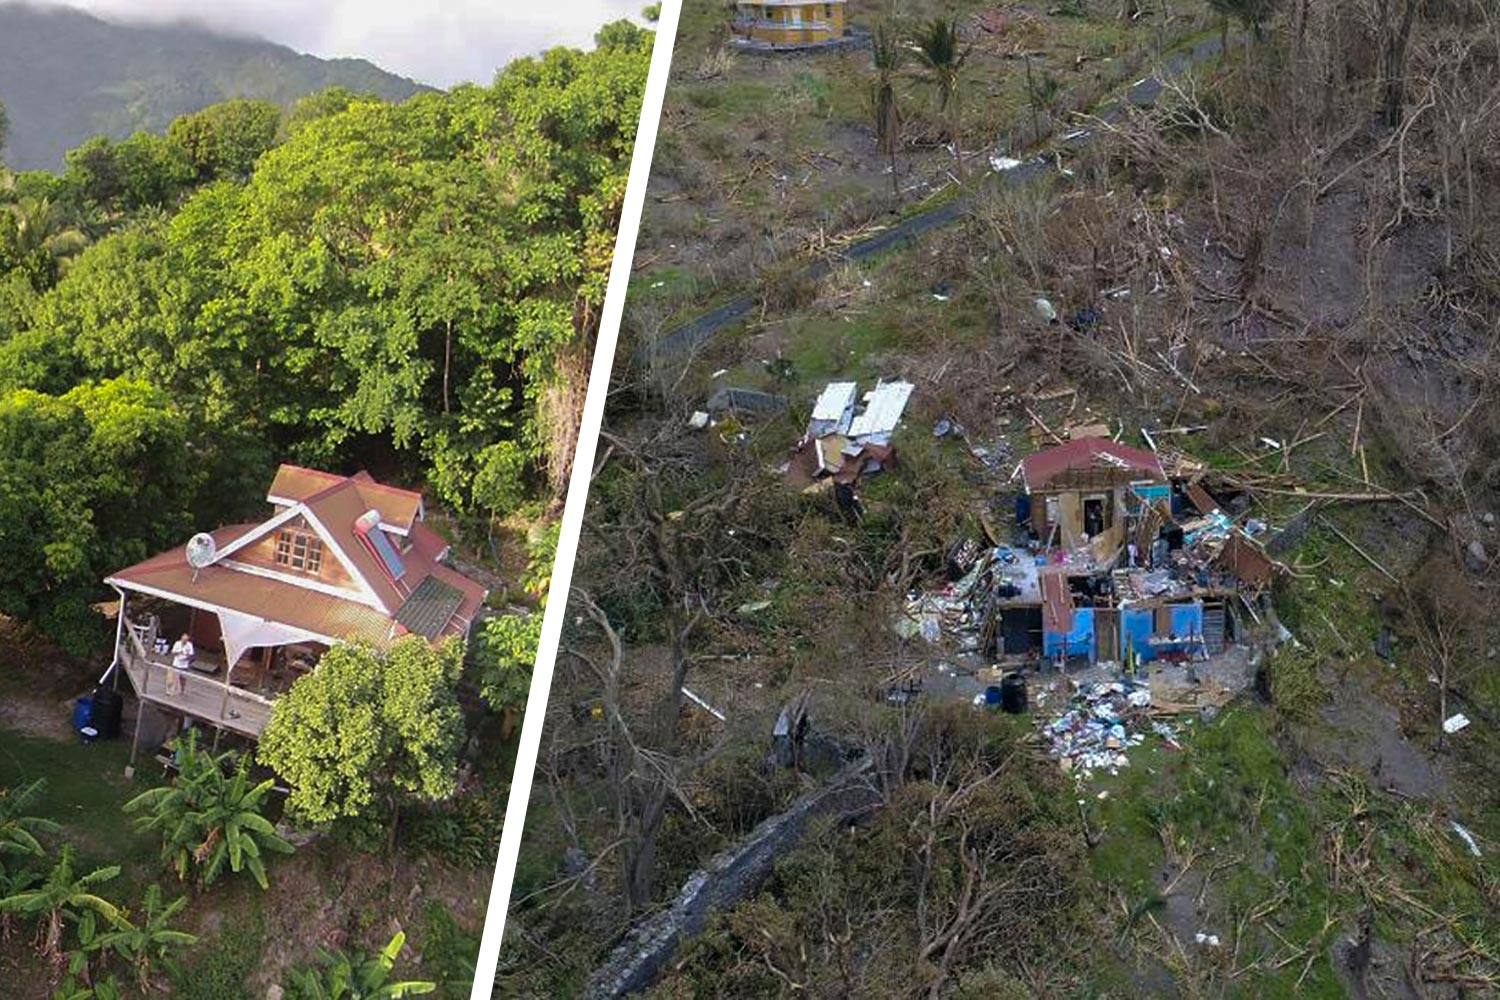 Andrew Walsh's father, Simon, is a photographer and used a drone to take before-and-after photos of their home in the village of Soufriere.